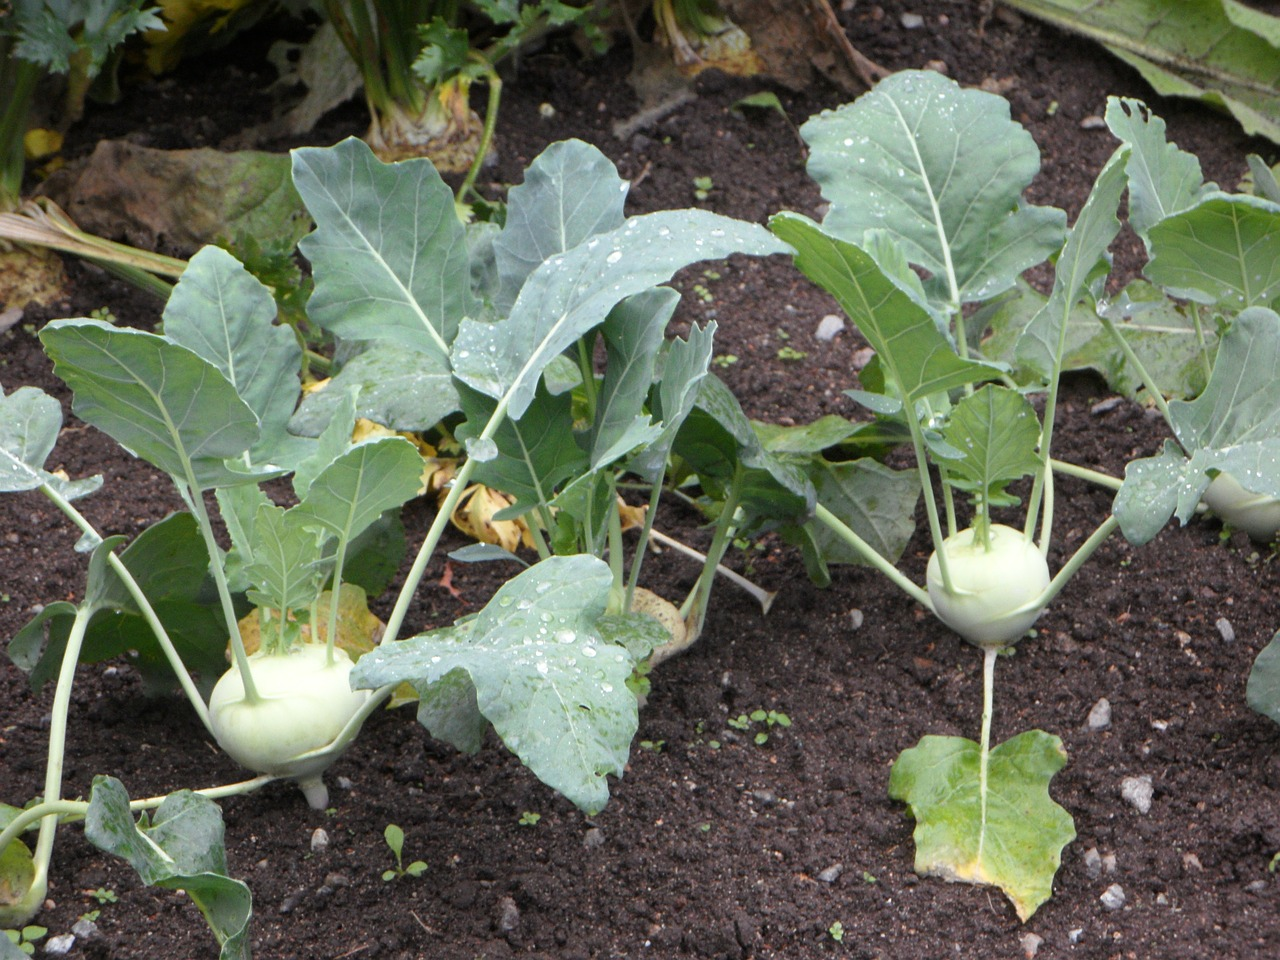 kohlrabi bed vegetable patch free picture